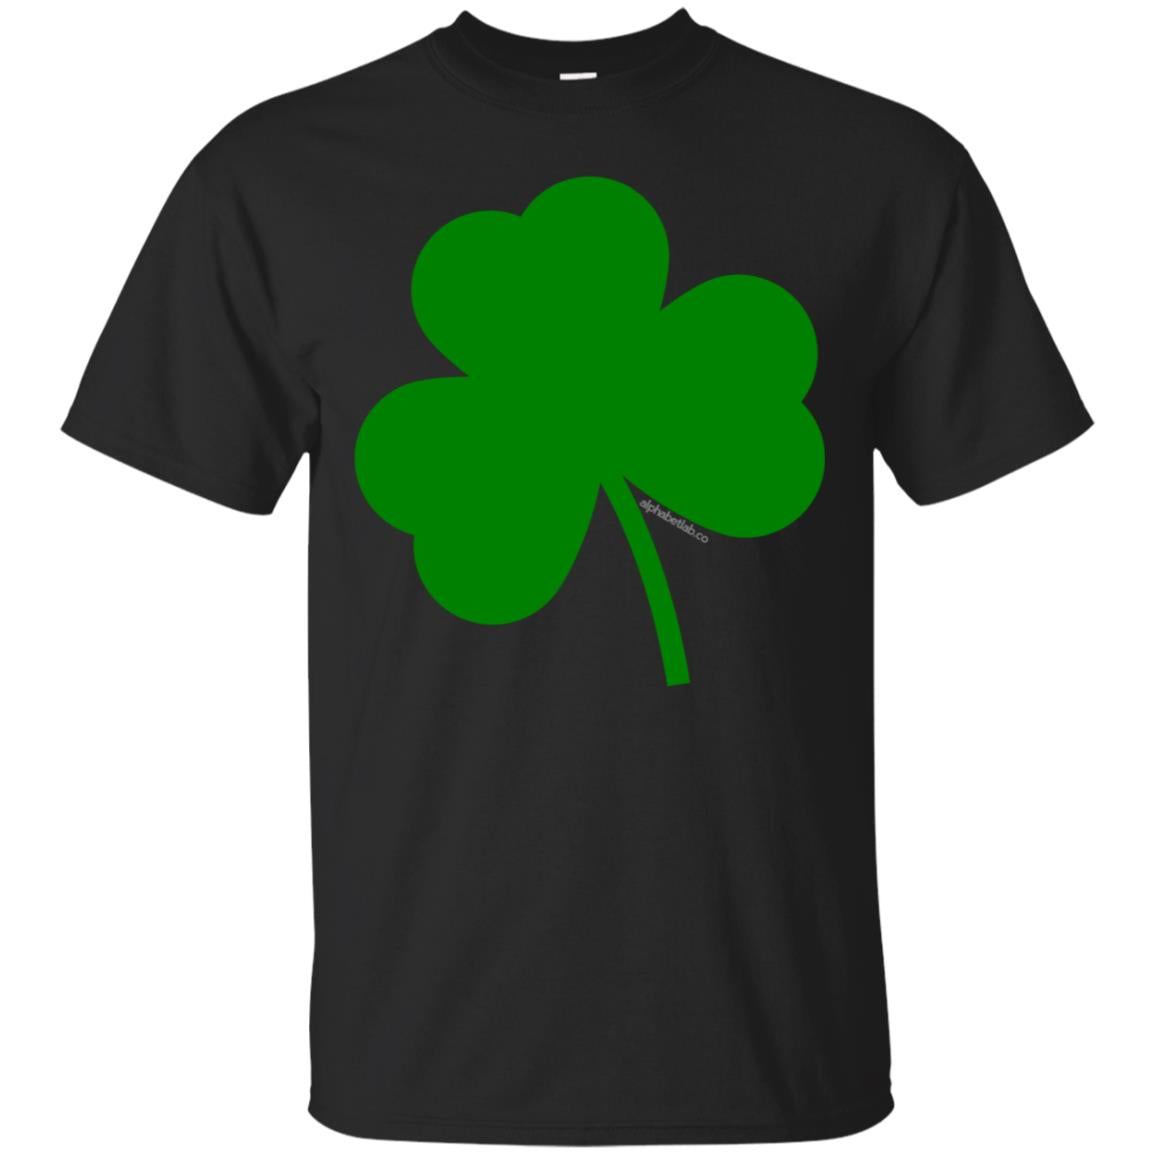 St Patricks Day Shirt Women Men Irish Paddys Green Shamrock 99promocode